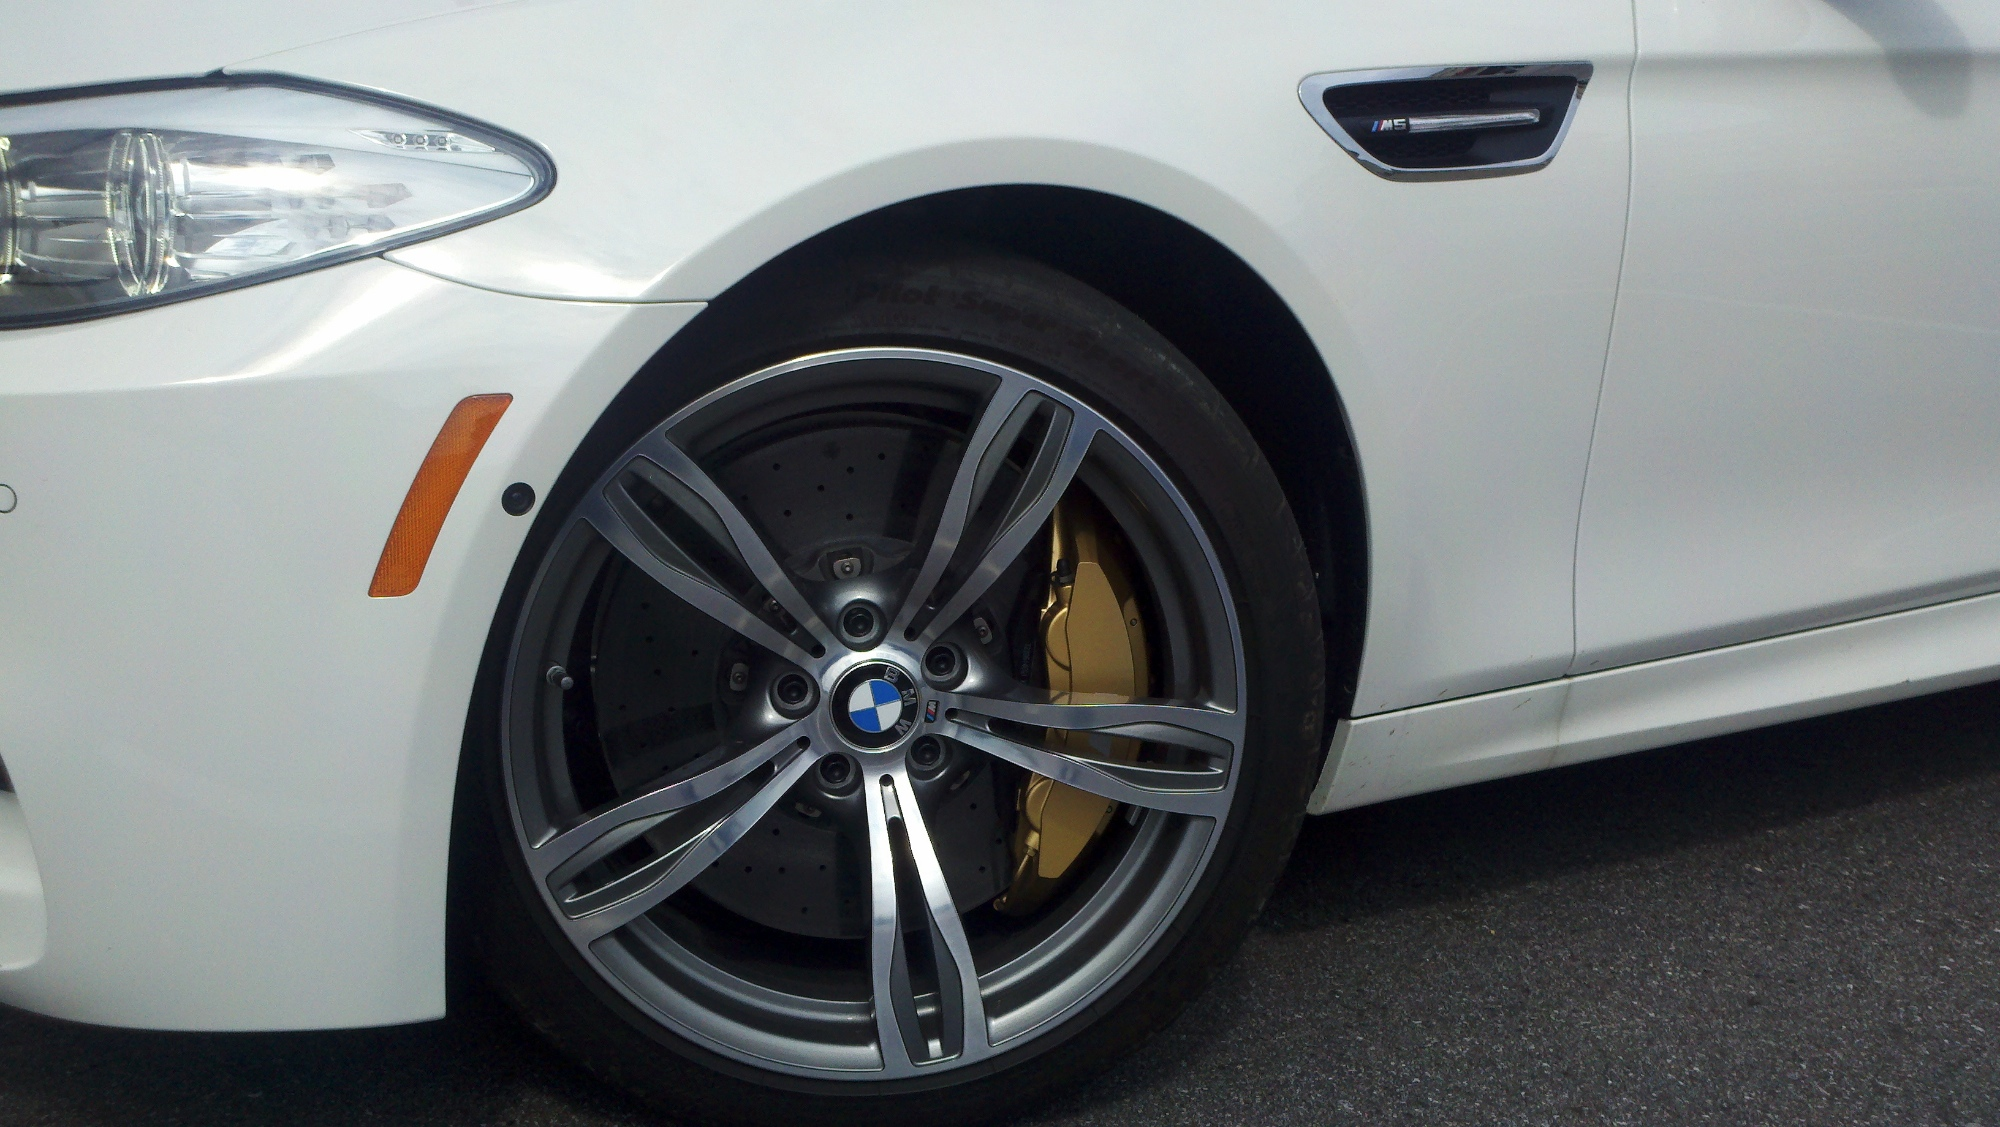 F10 Bmw M5 Spotted With Carbon Brakes Bmwcoop